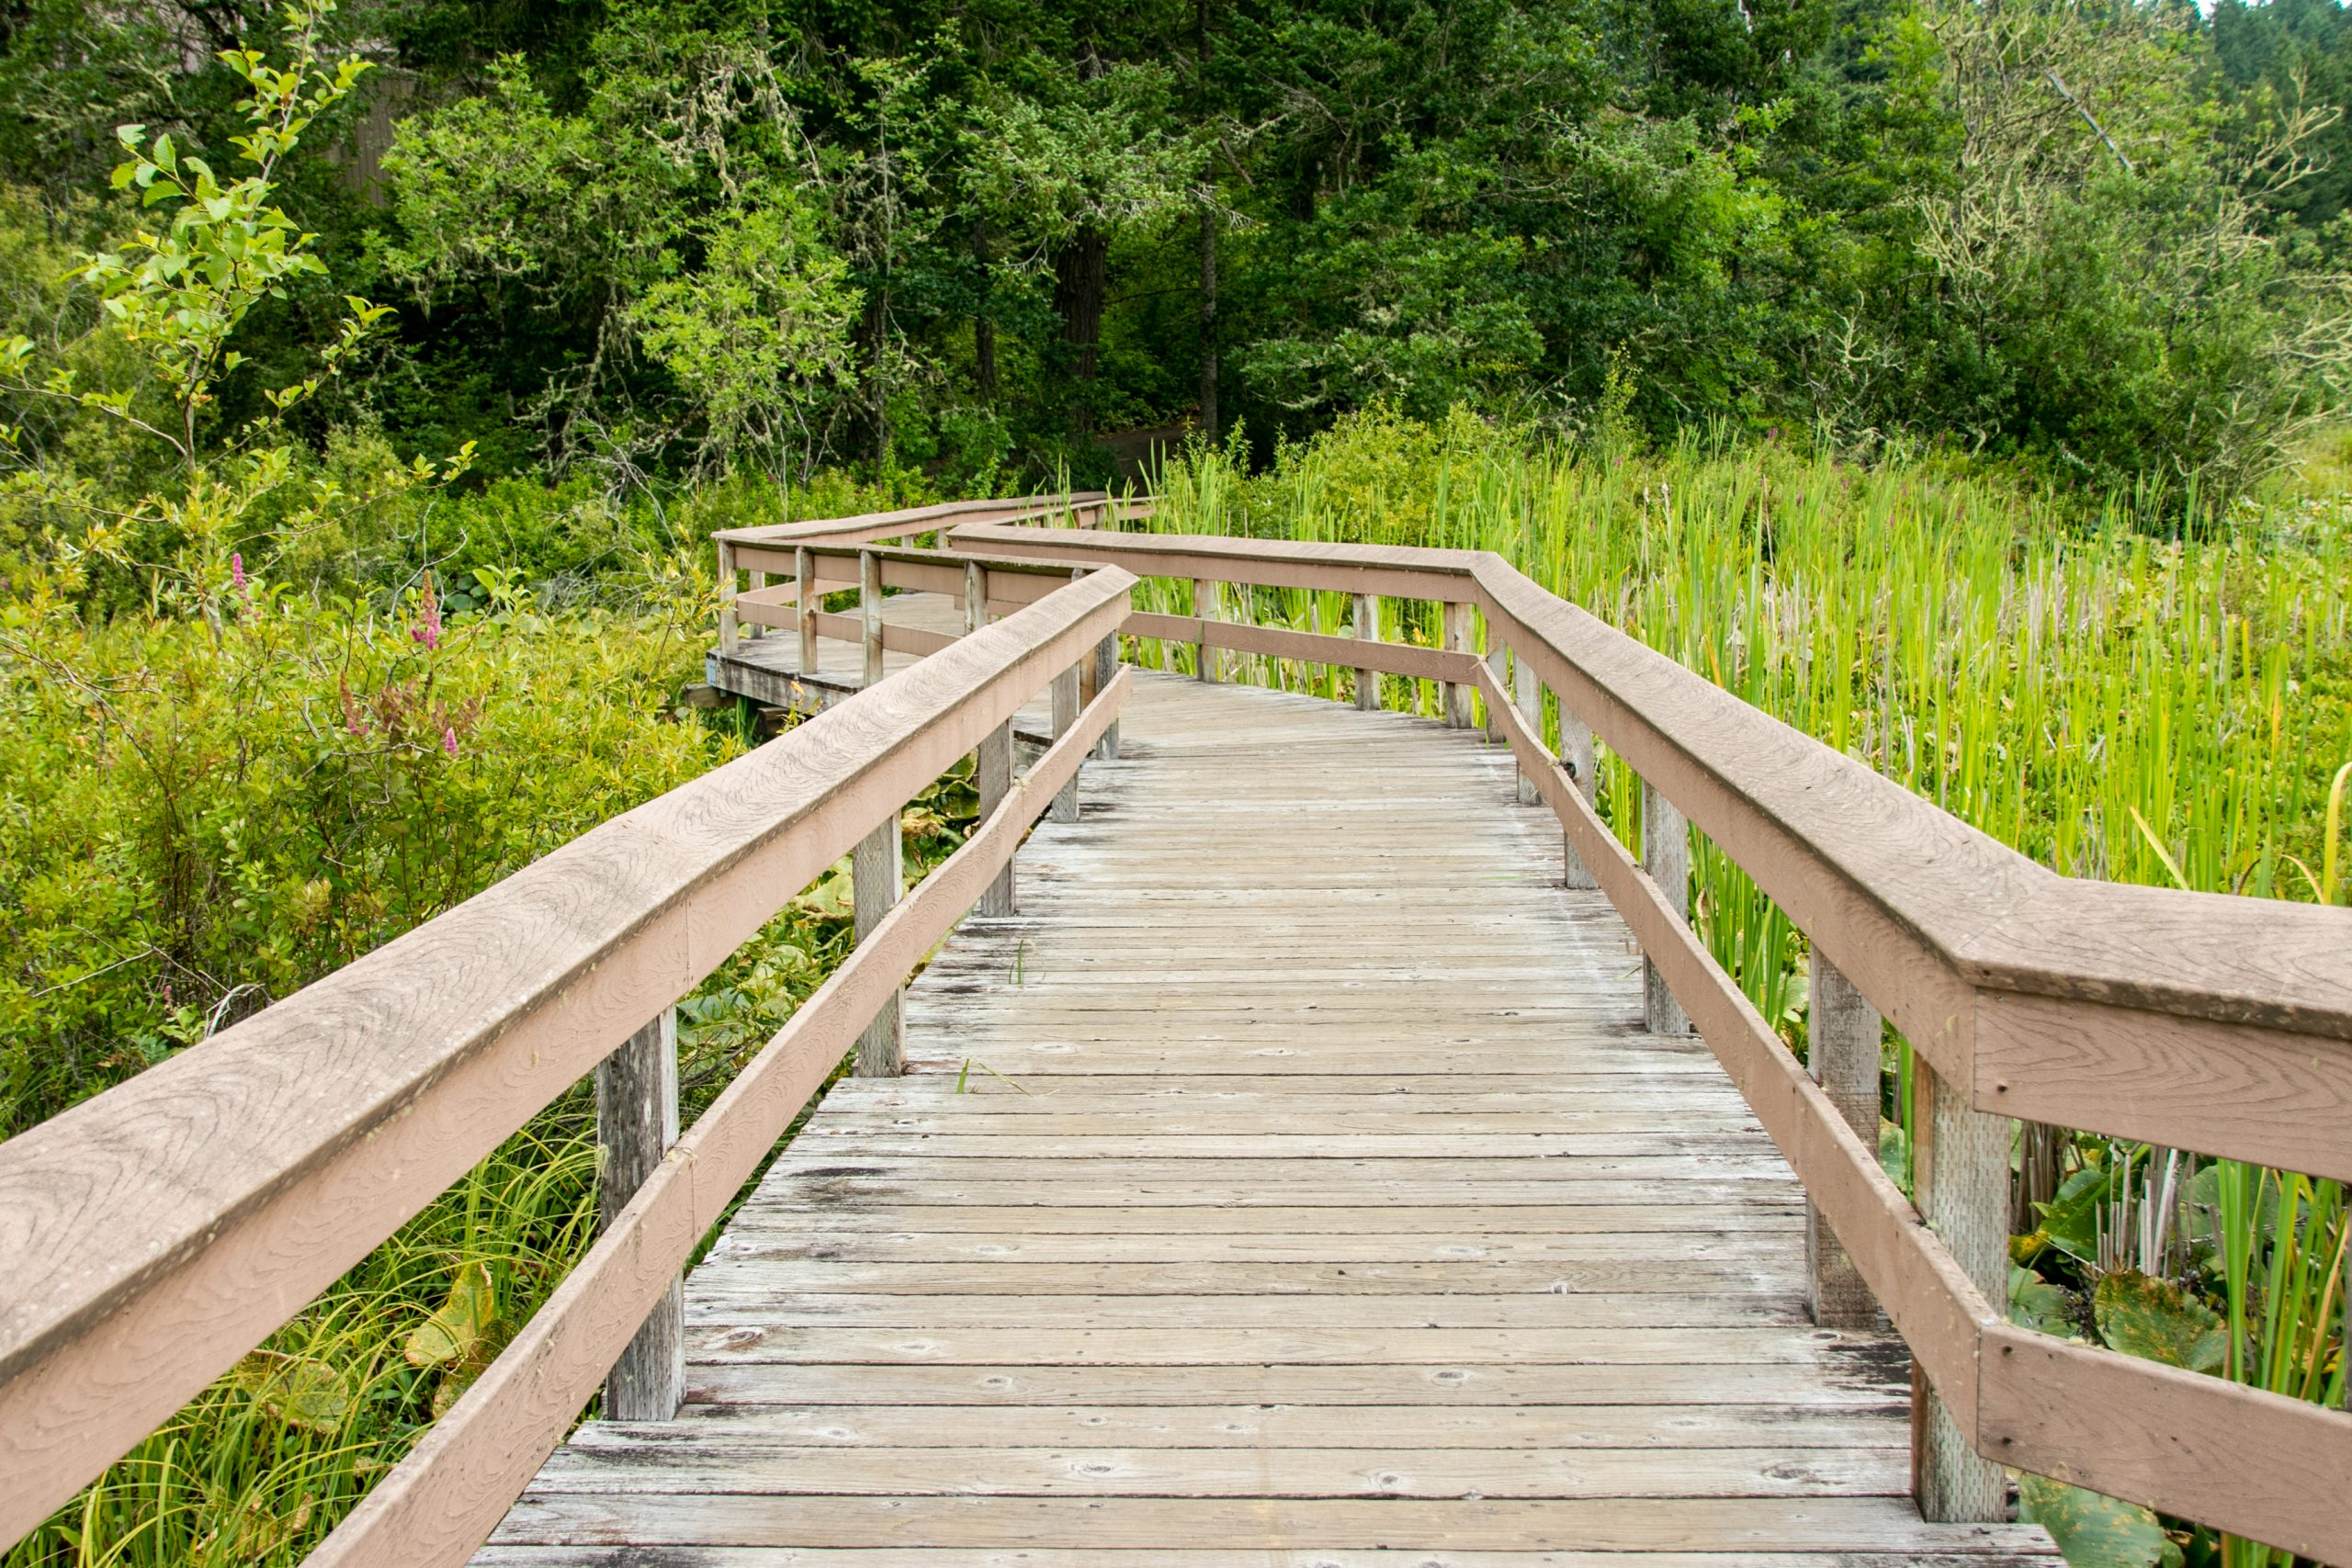 Boardwalk Surrounded By Tall Grass And Plants